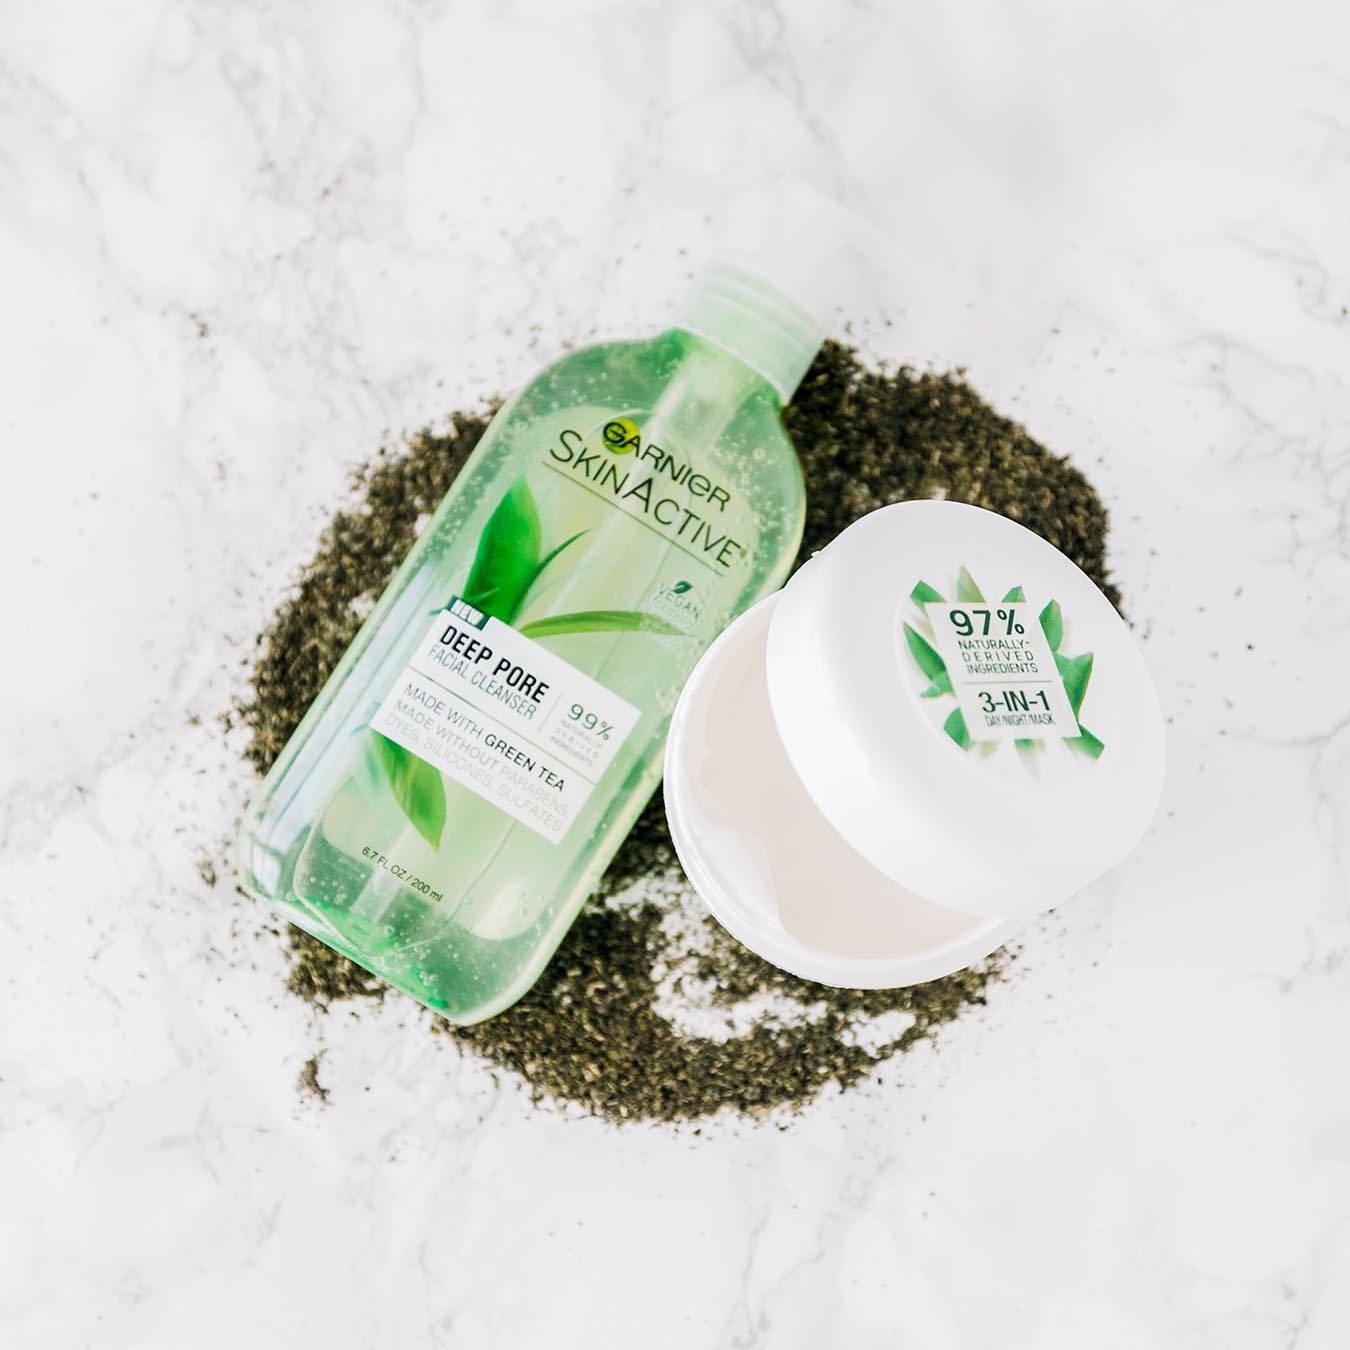 Garnier SkinActive 3-in-1 Day/Night Mask ajar with Green Tea and SkinActive Deep Pore Cleanser sitting in a pile of powdered tea leaves on white marble.